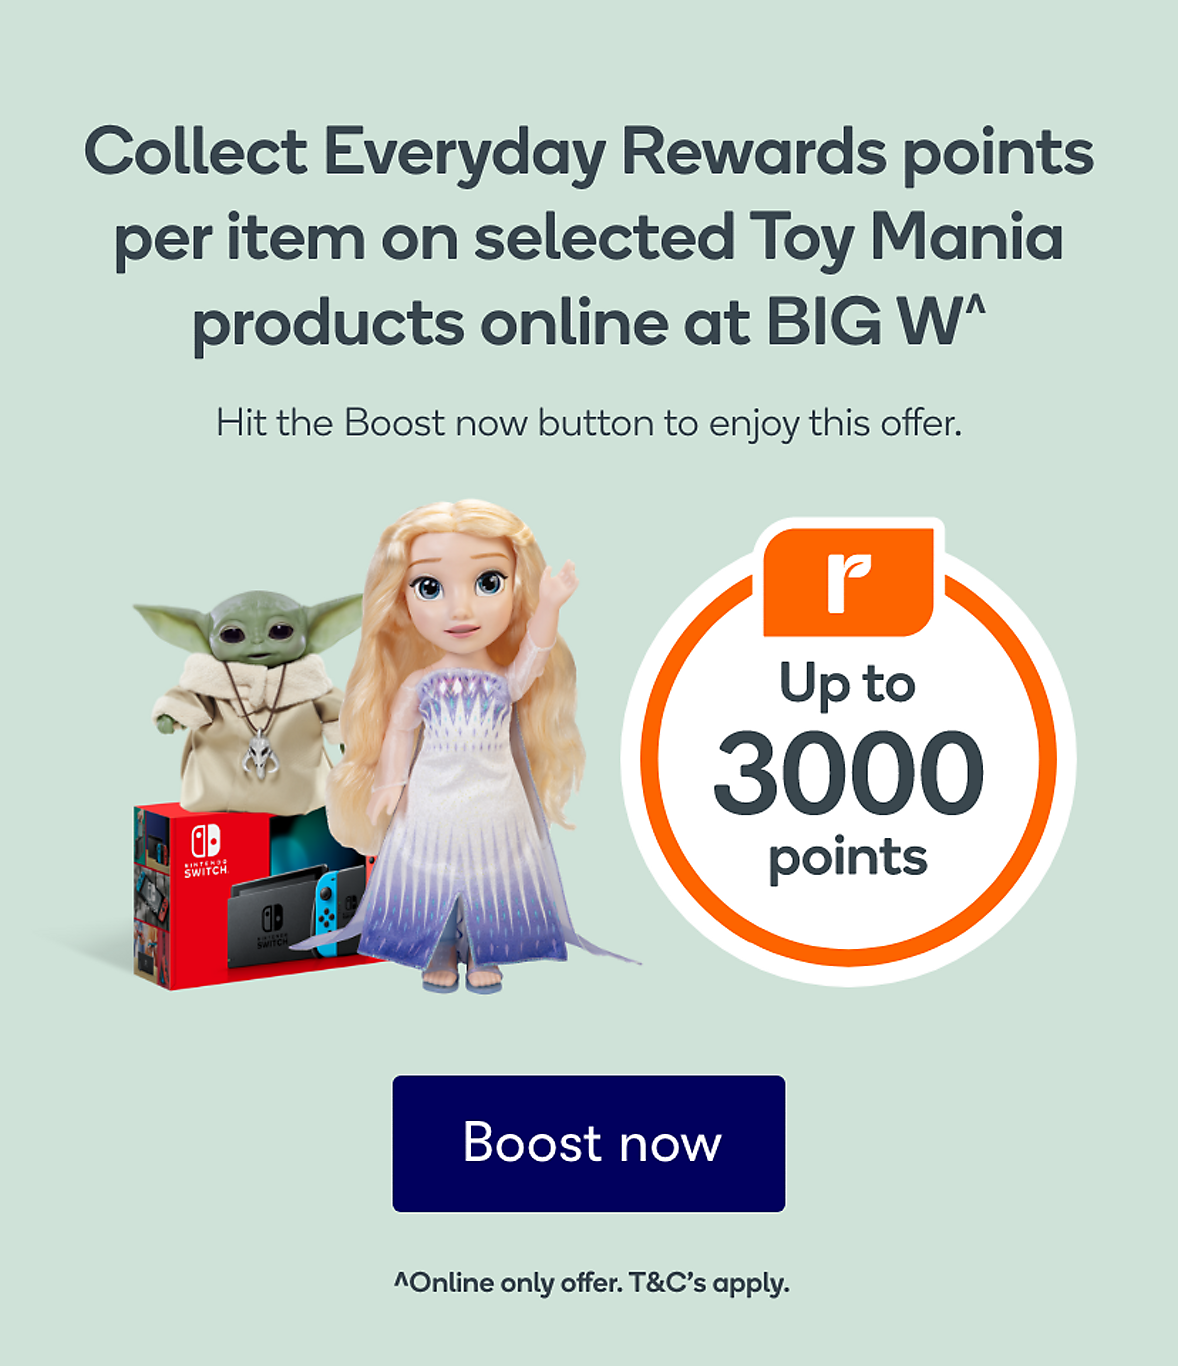 Collect Up to 3000 Bonus Points